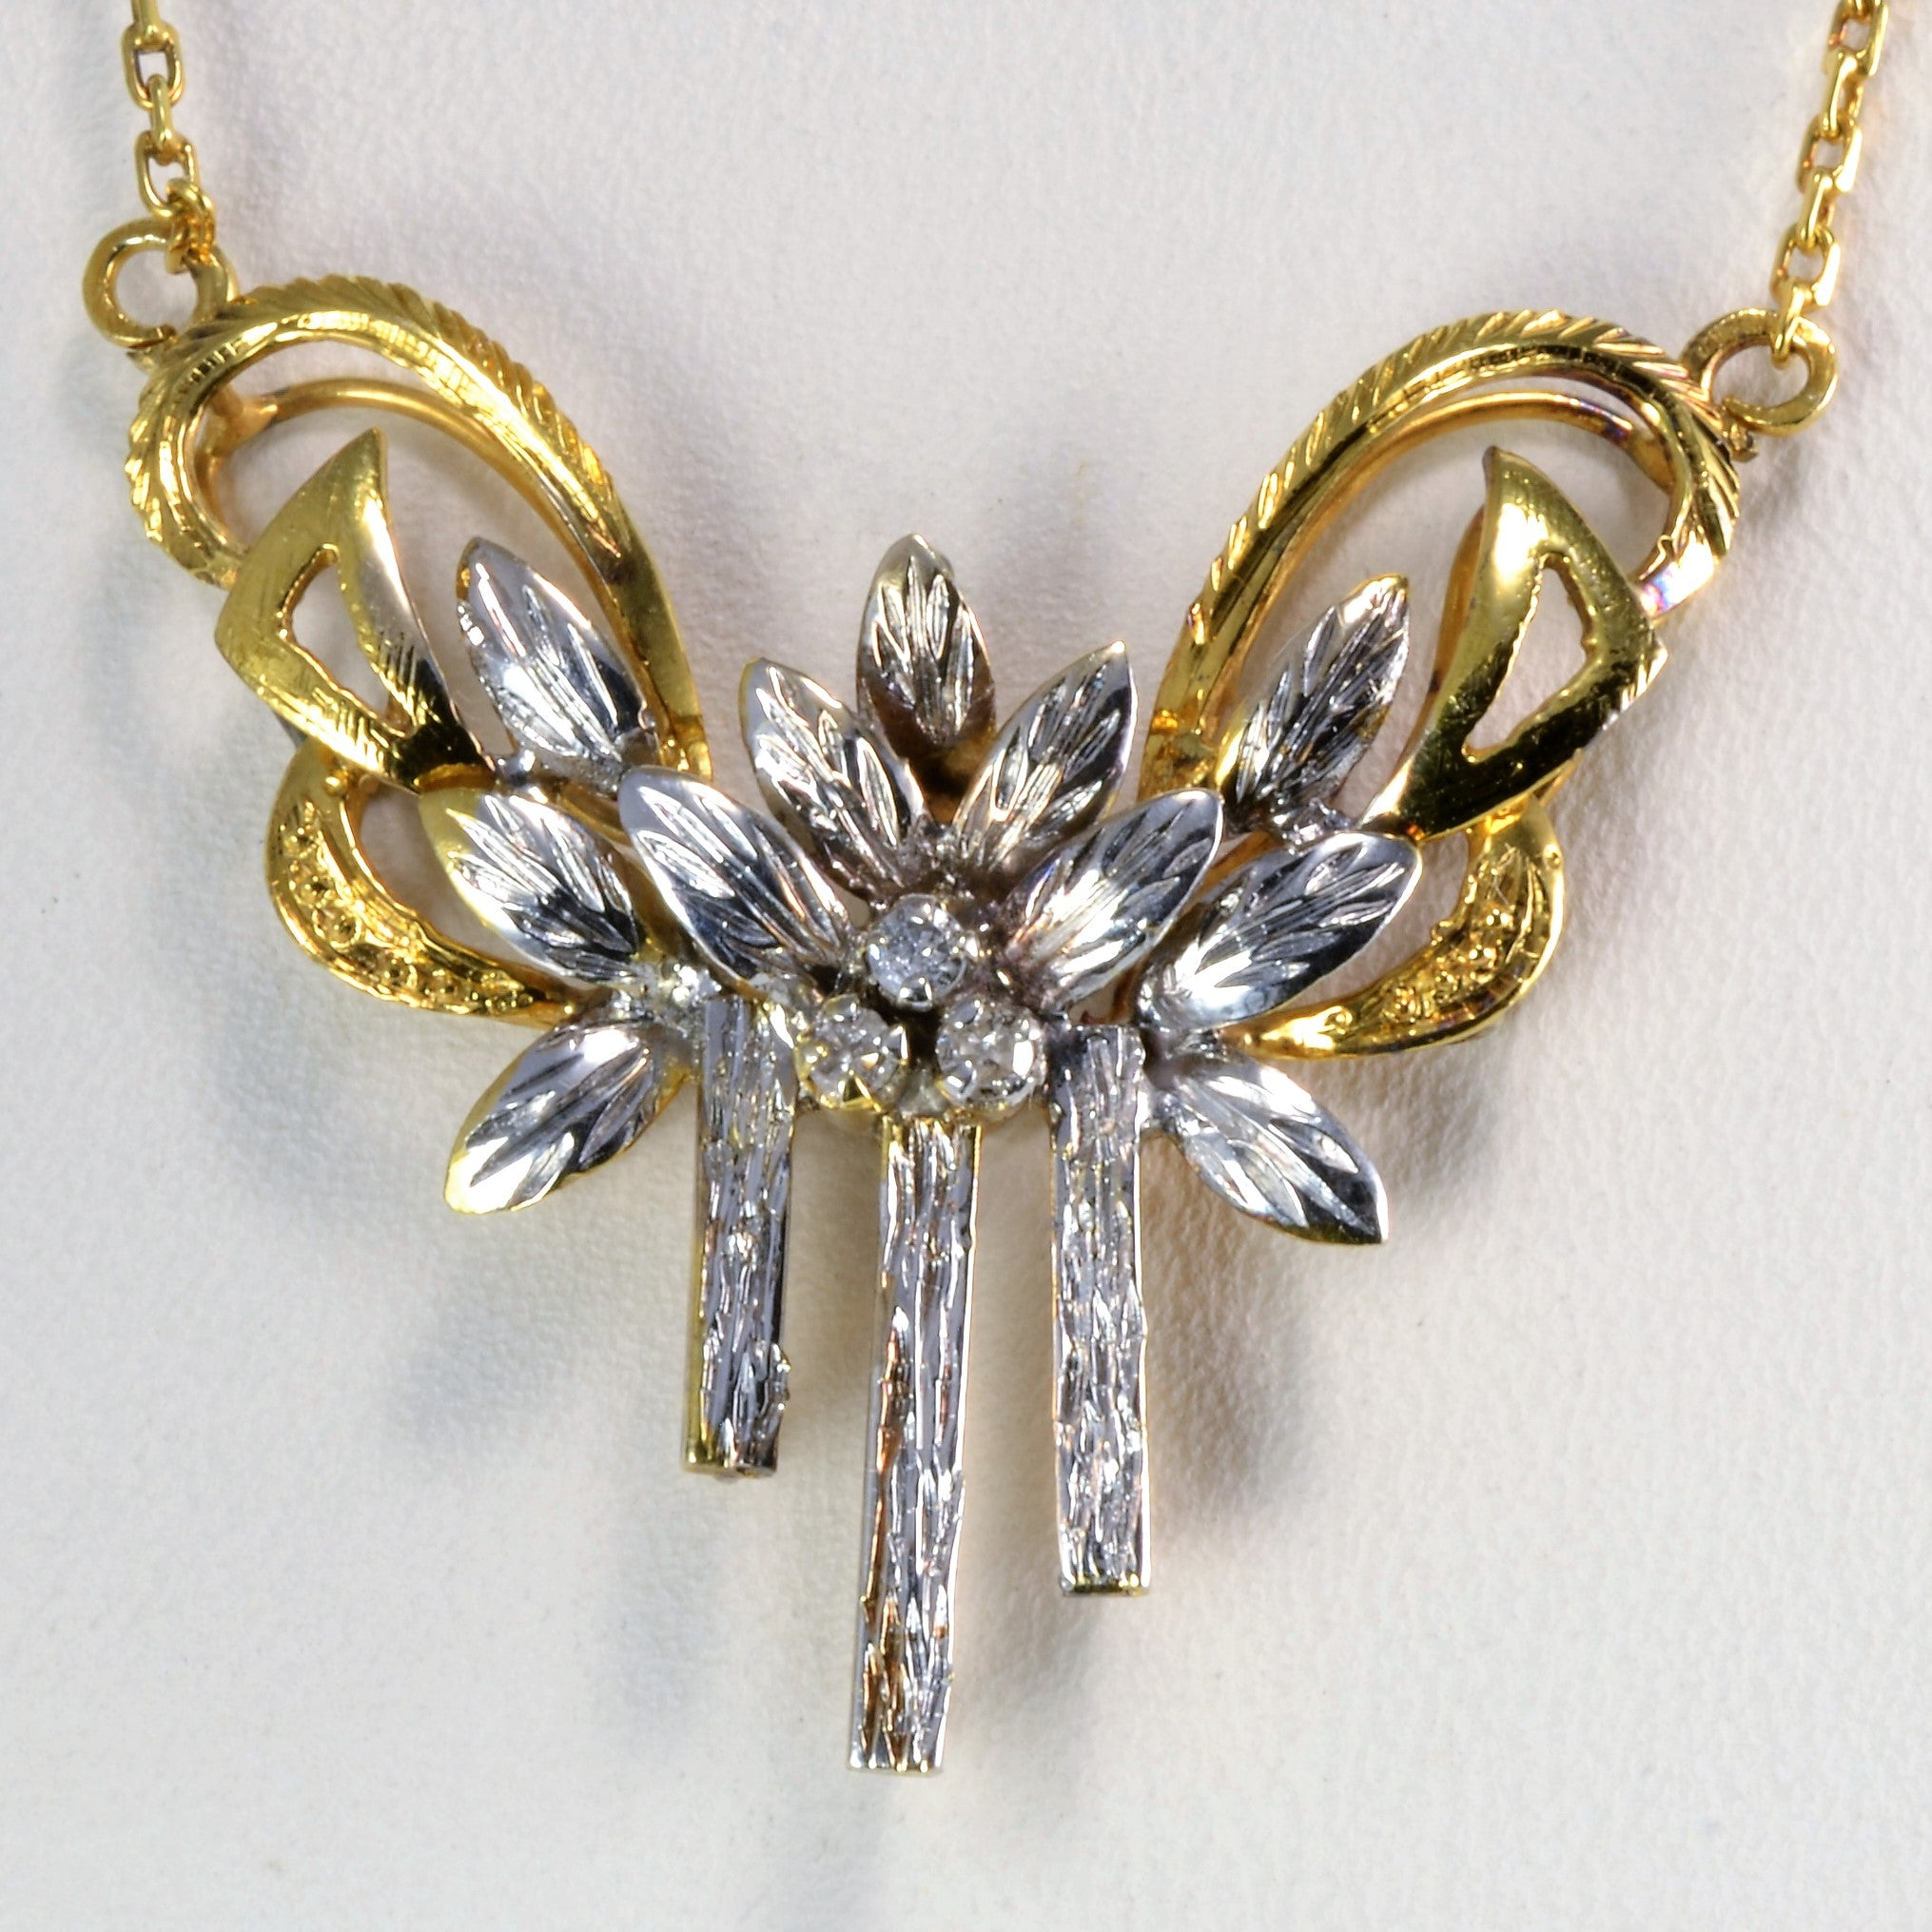 Floral Inspired Two Tone Gold Diamond Necklace | 0.03 ctw, 16''|